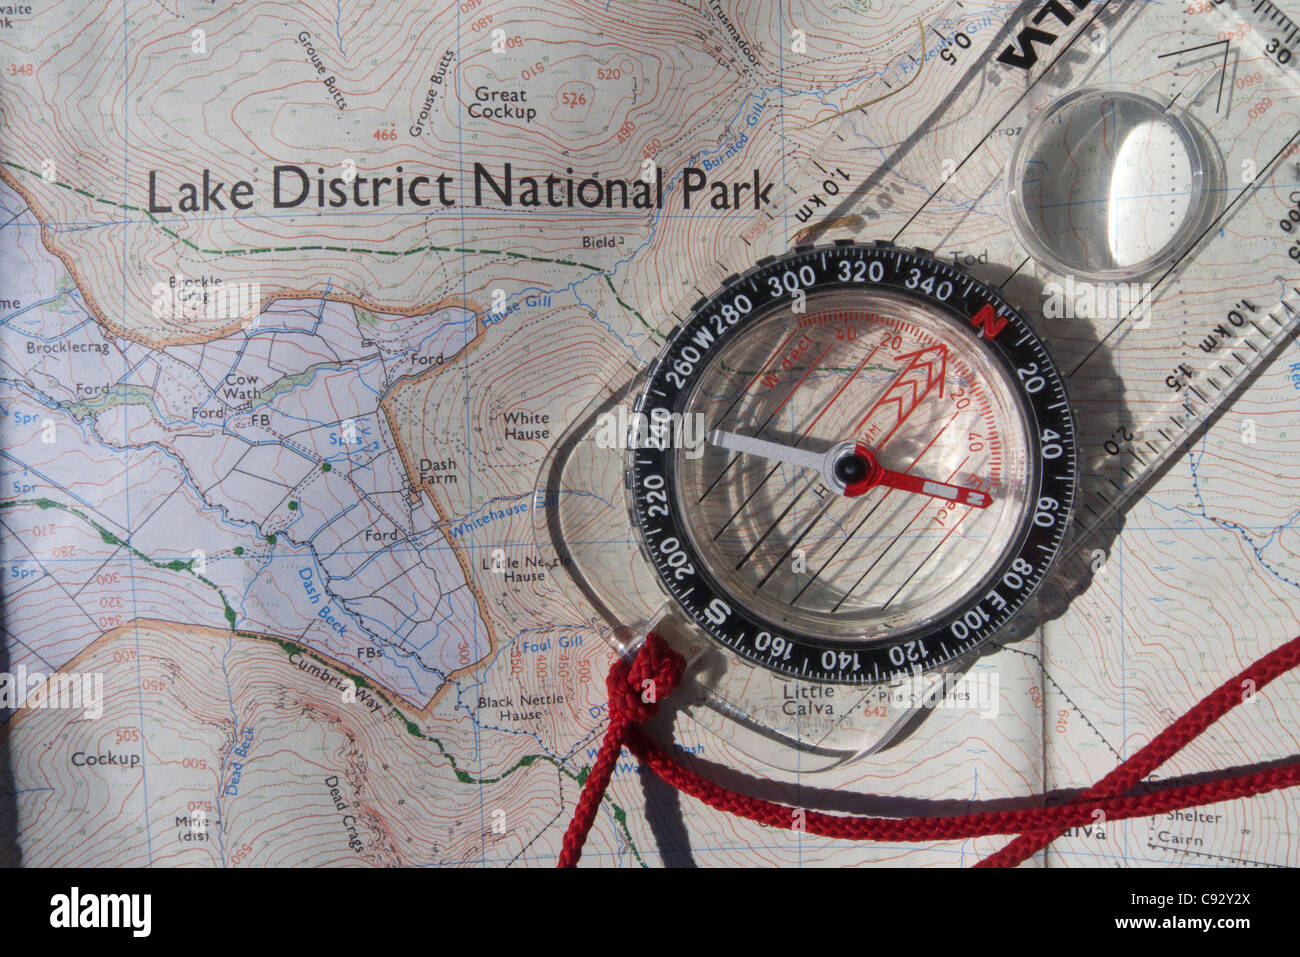 A map of the Lake District and a compass - Stock Image